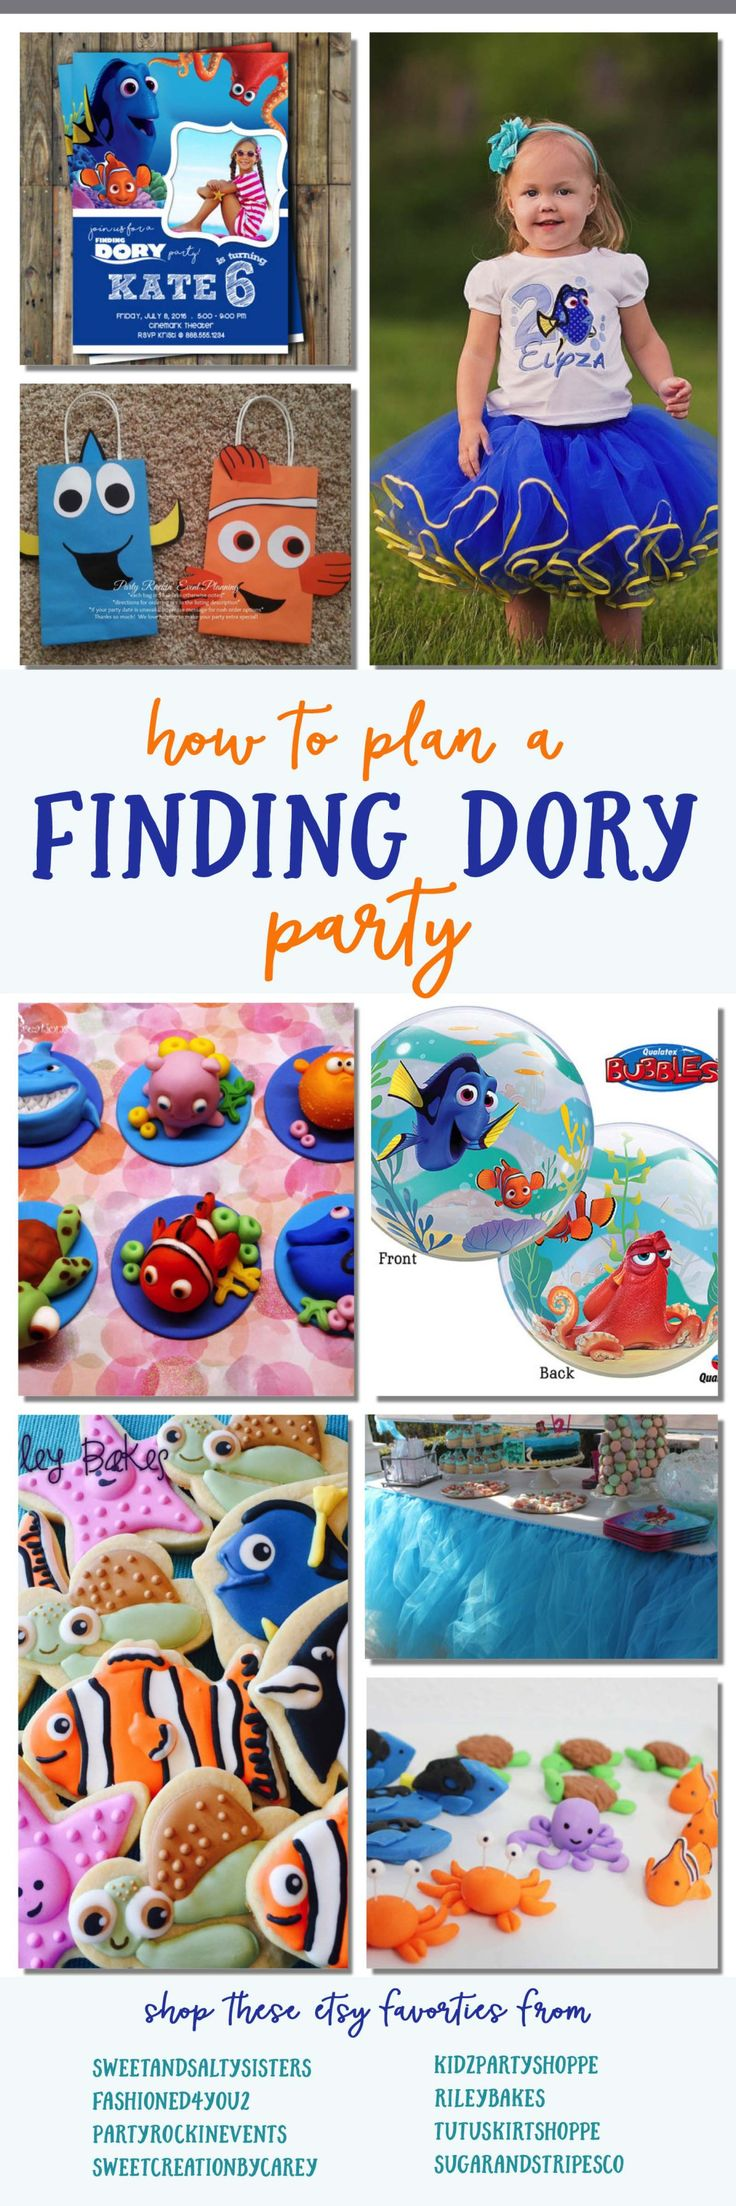 Finding Dory party ideas, Finding Nemo Birthday party planner! Links to lots of cute invitations, decorations, birthday outfits, cakes, cupcakes and party favors